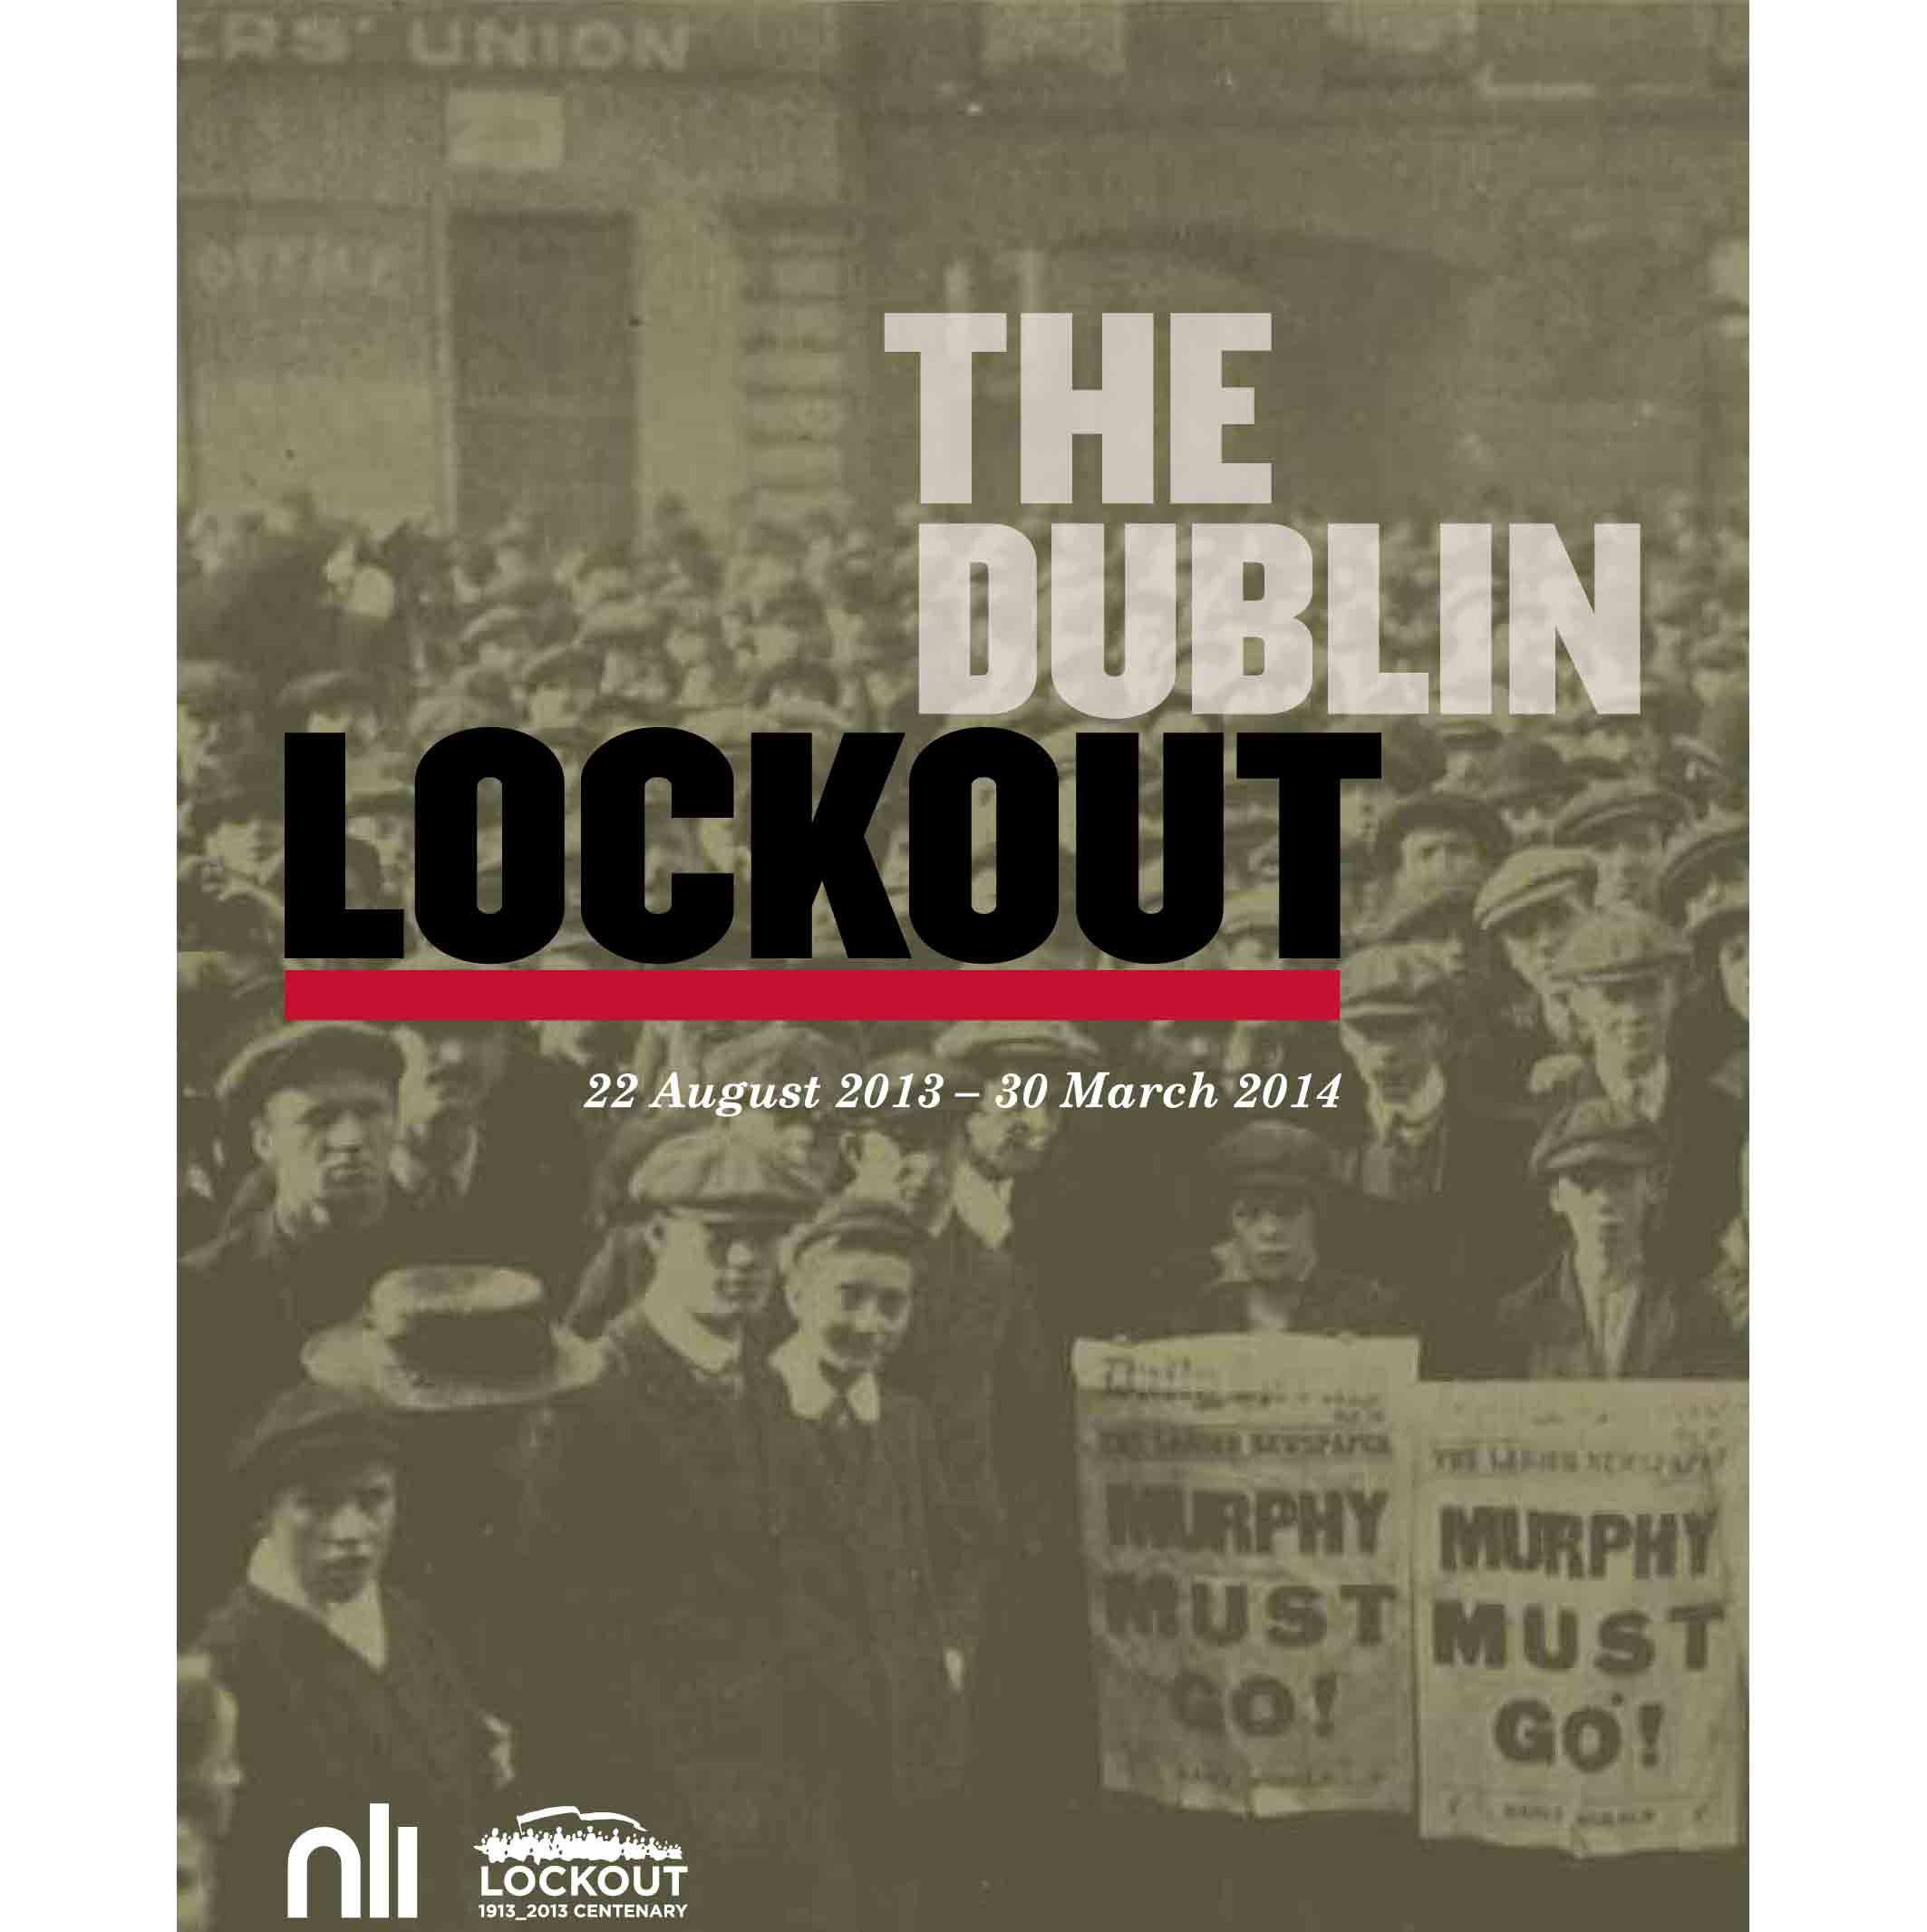 The Dublin Lockout: an exhibition at the National Library of Ireland